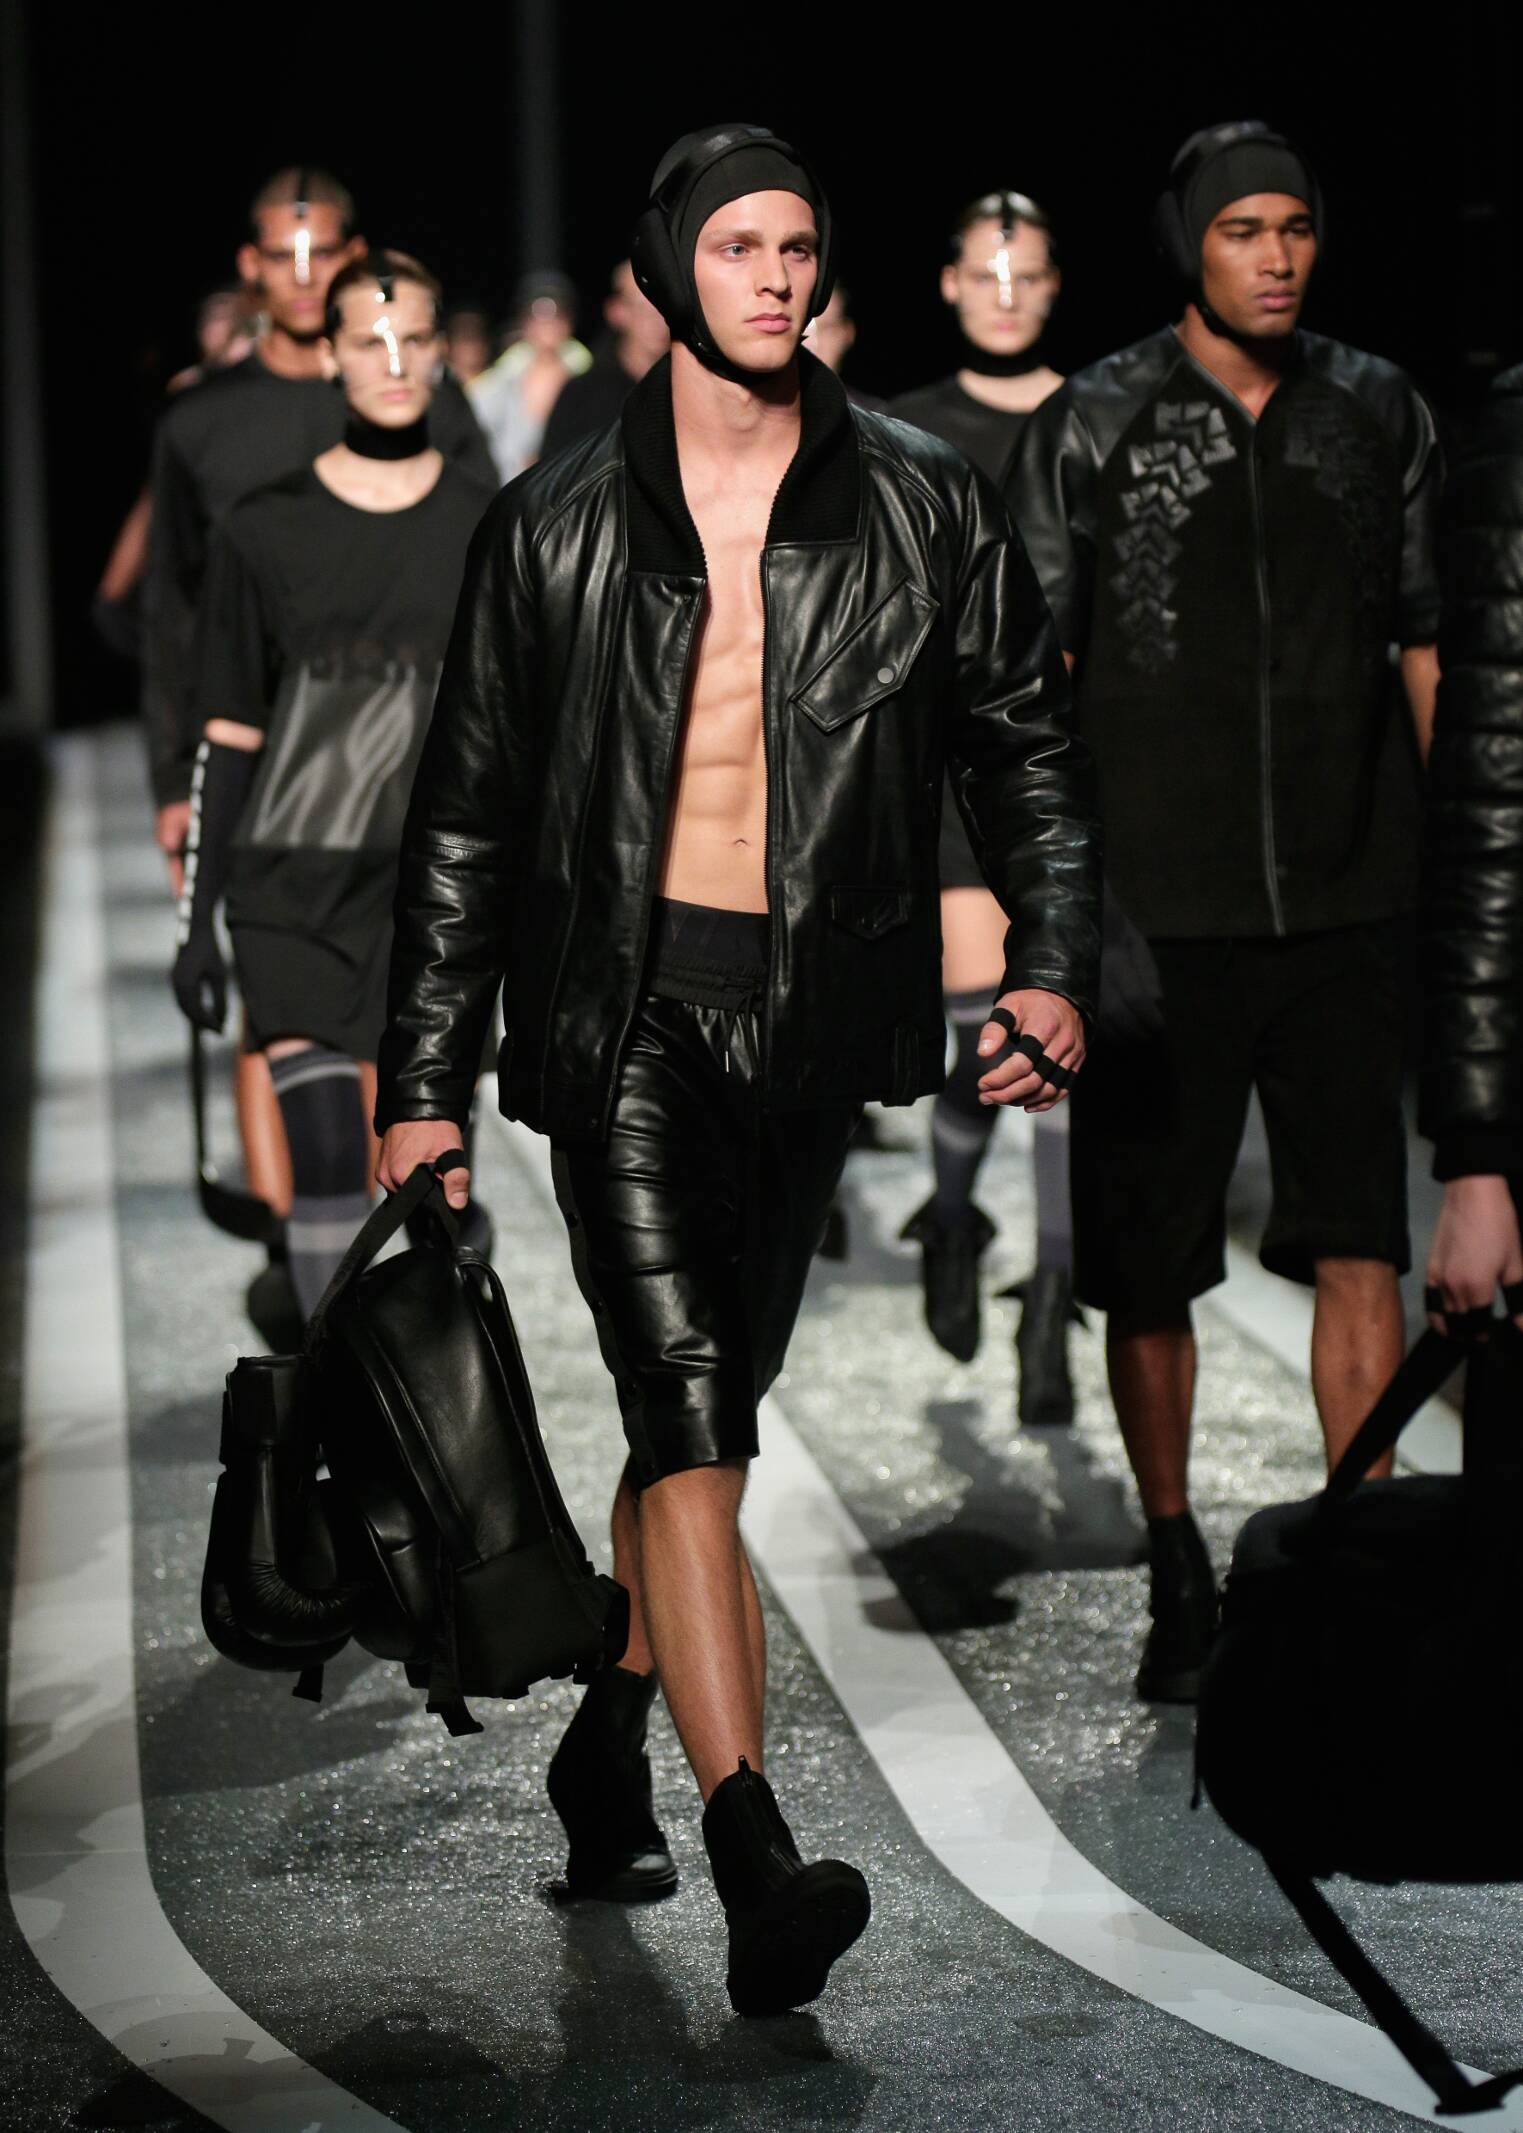 2015 Alexander Wang for H&M Collection Finale